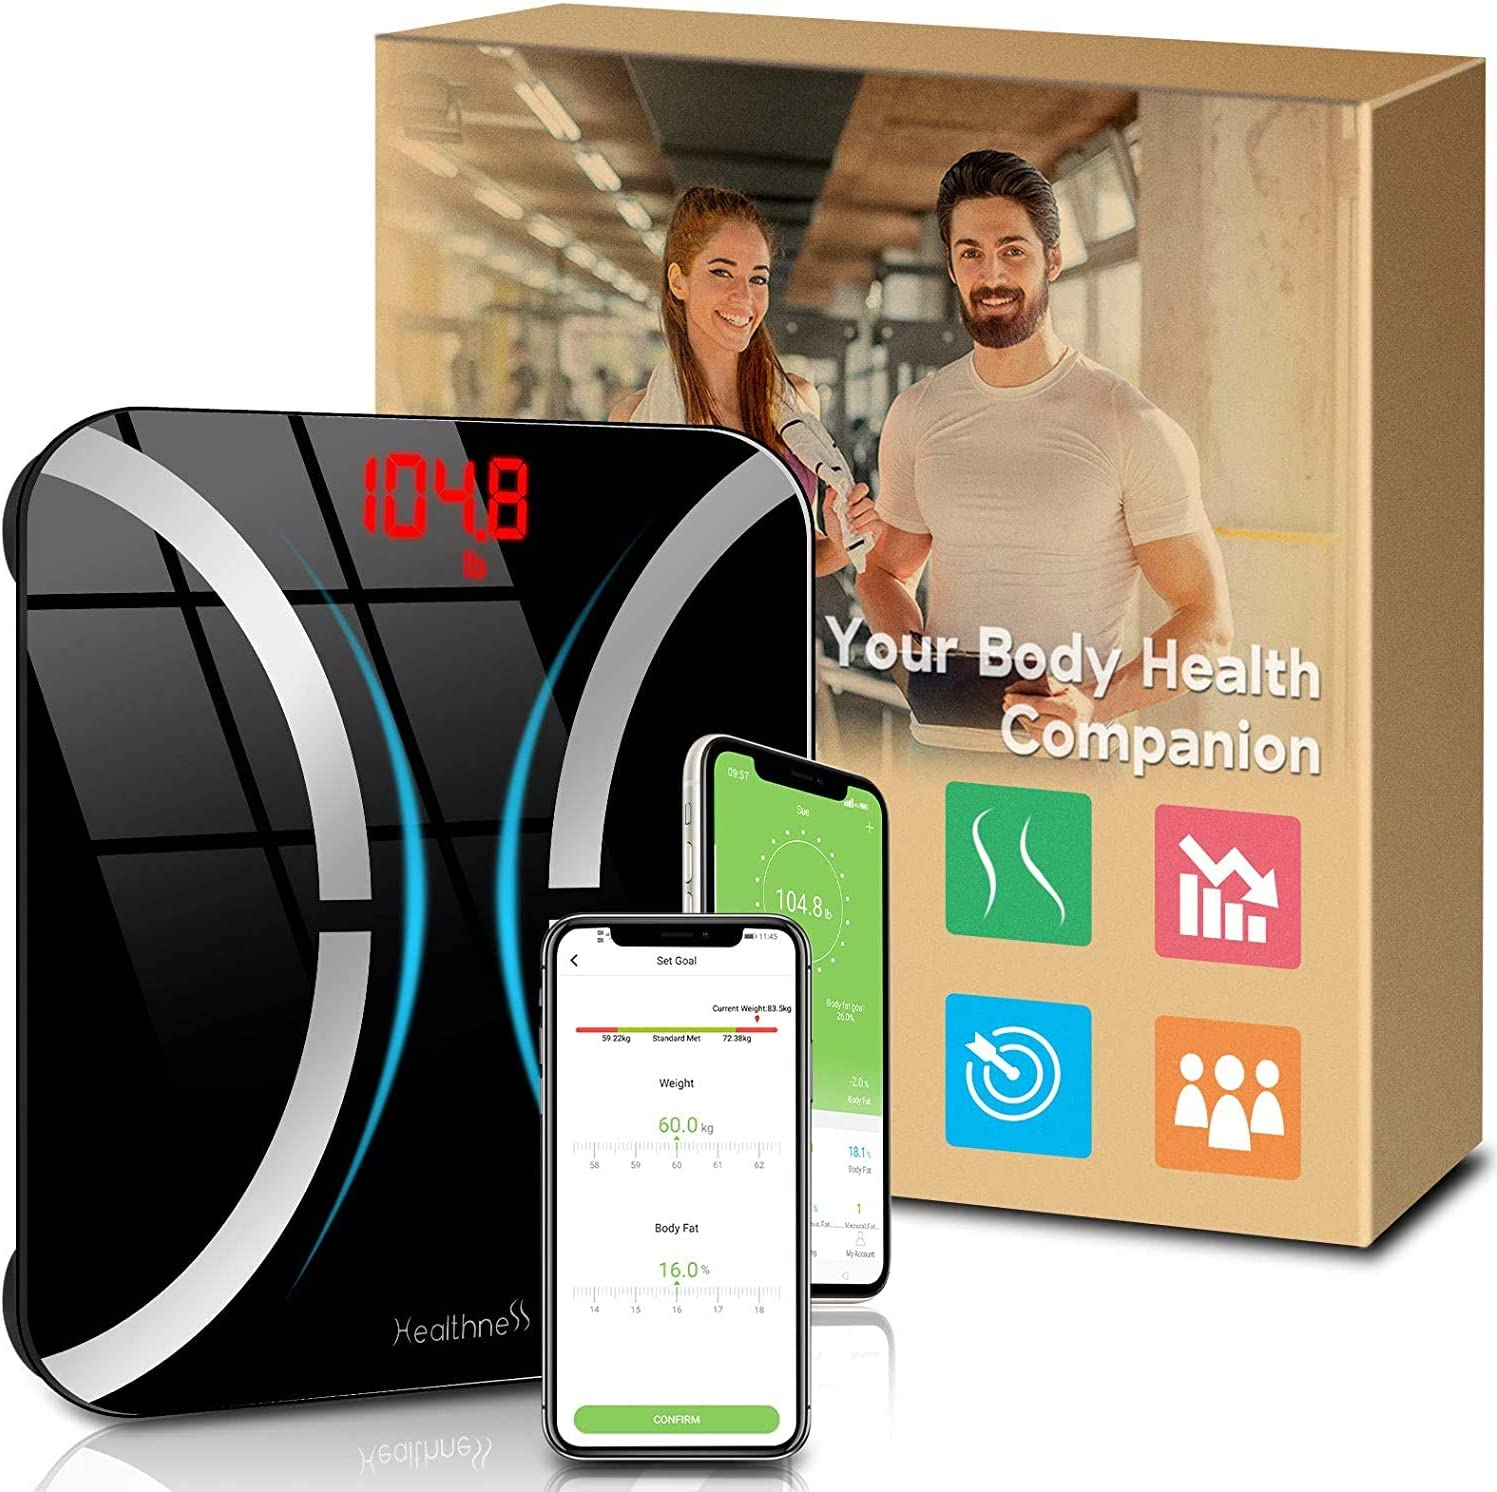 Body Fat Scale, Digital Bathroom Scale Bluetooth Weight Scale with BMI and Body Fat Percentage, Wireless Smart Scale Body Composition Analyzer Health Monitor with iOS Android App for Weight Loss